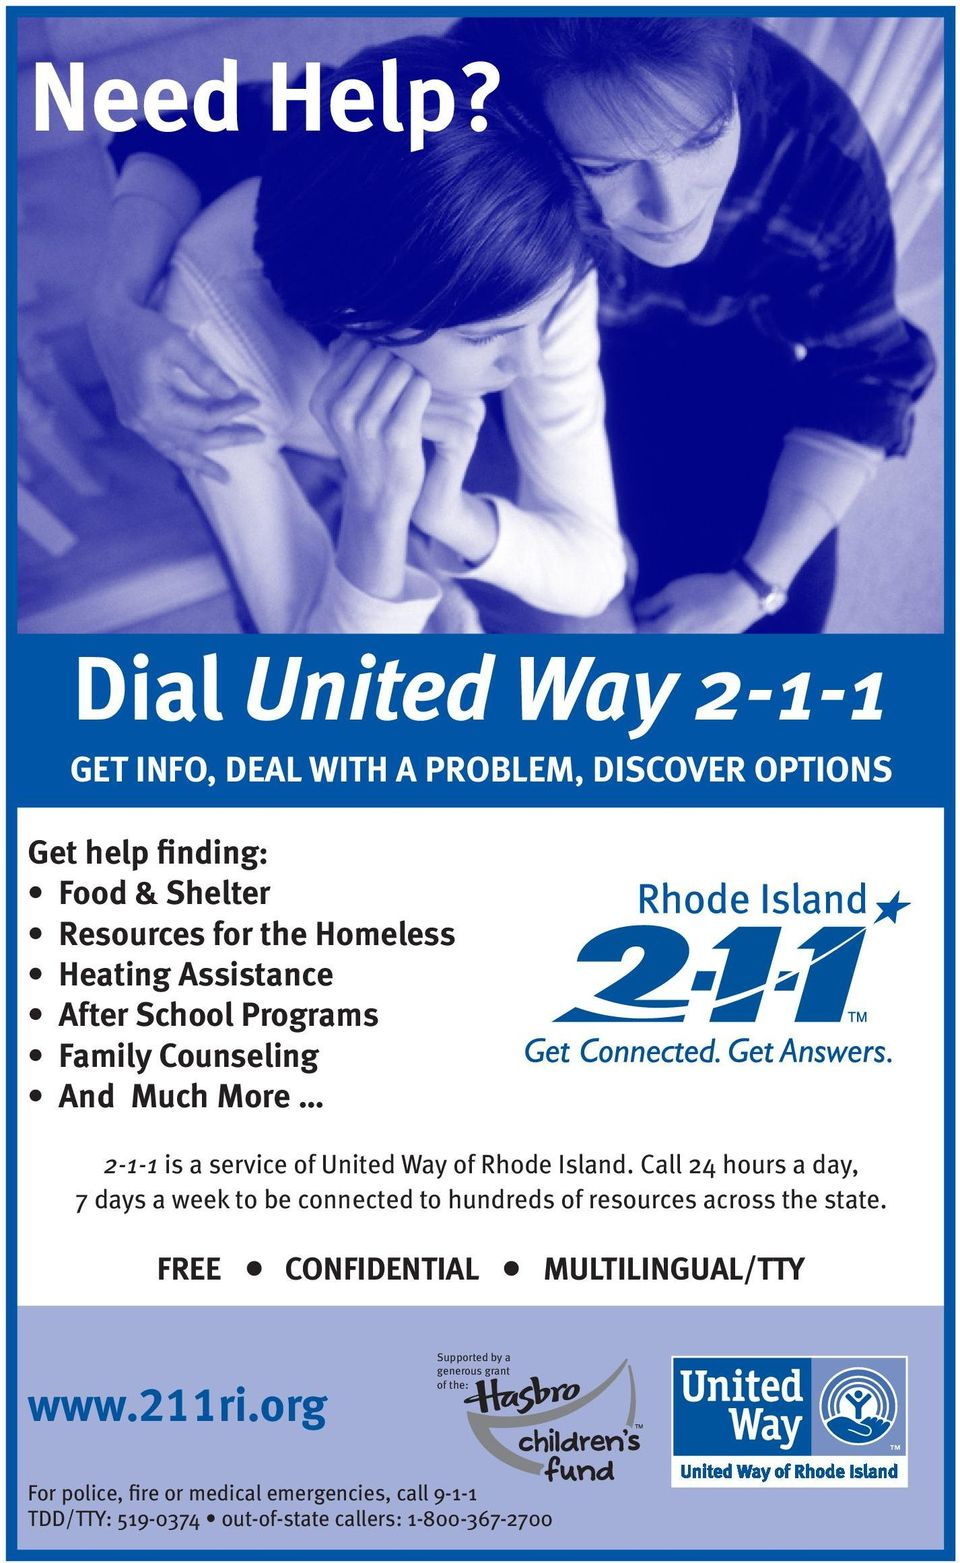 Assistance After School Programs Family Counseling And Much More 2-1-1 is a service of United Way of Rhode Island.